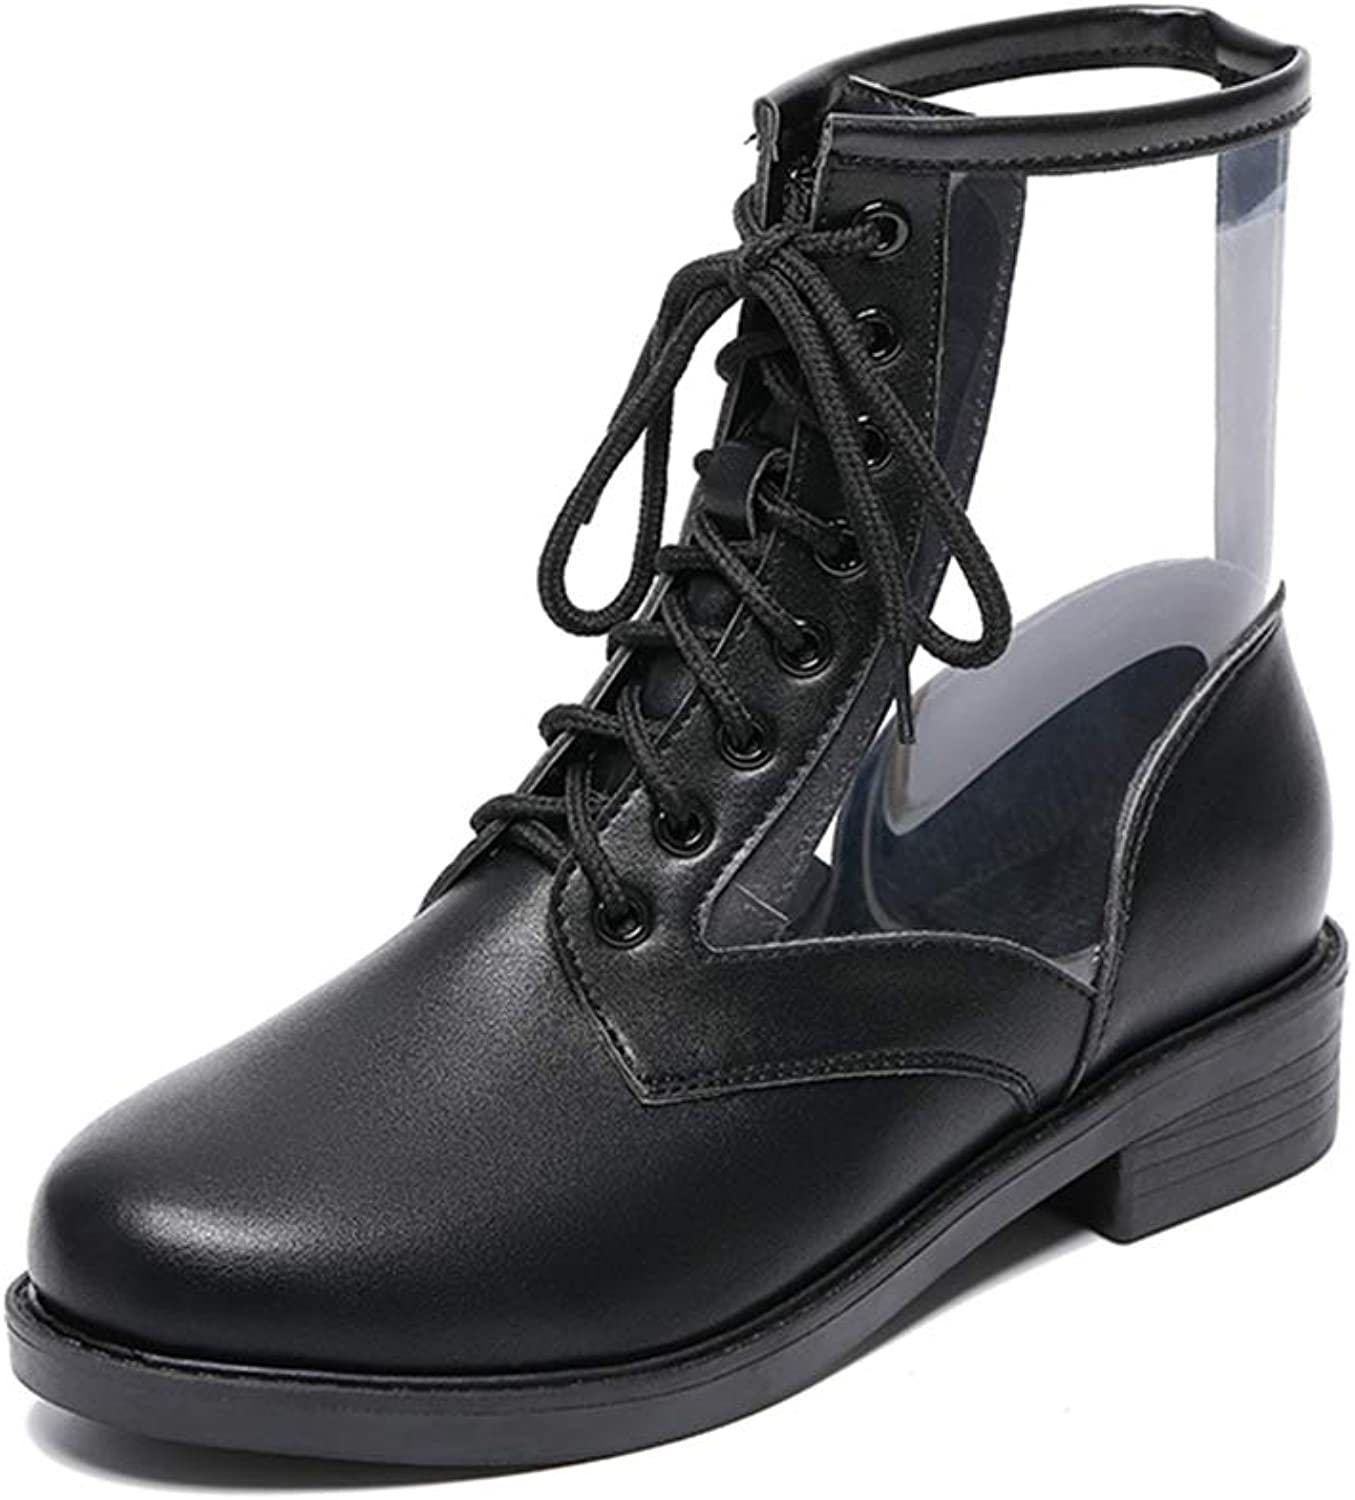 York Zhu Women's Ankle Boot,Lace Up Round Toe Transparent Martin Boots Short Boot